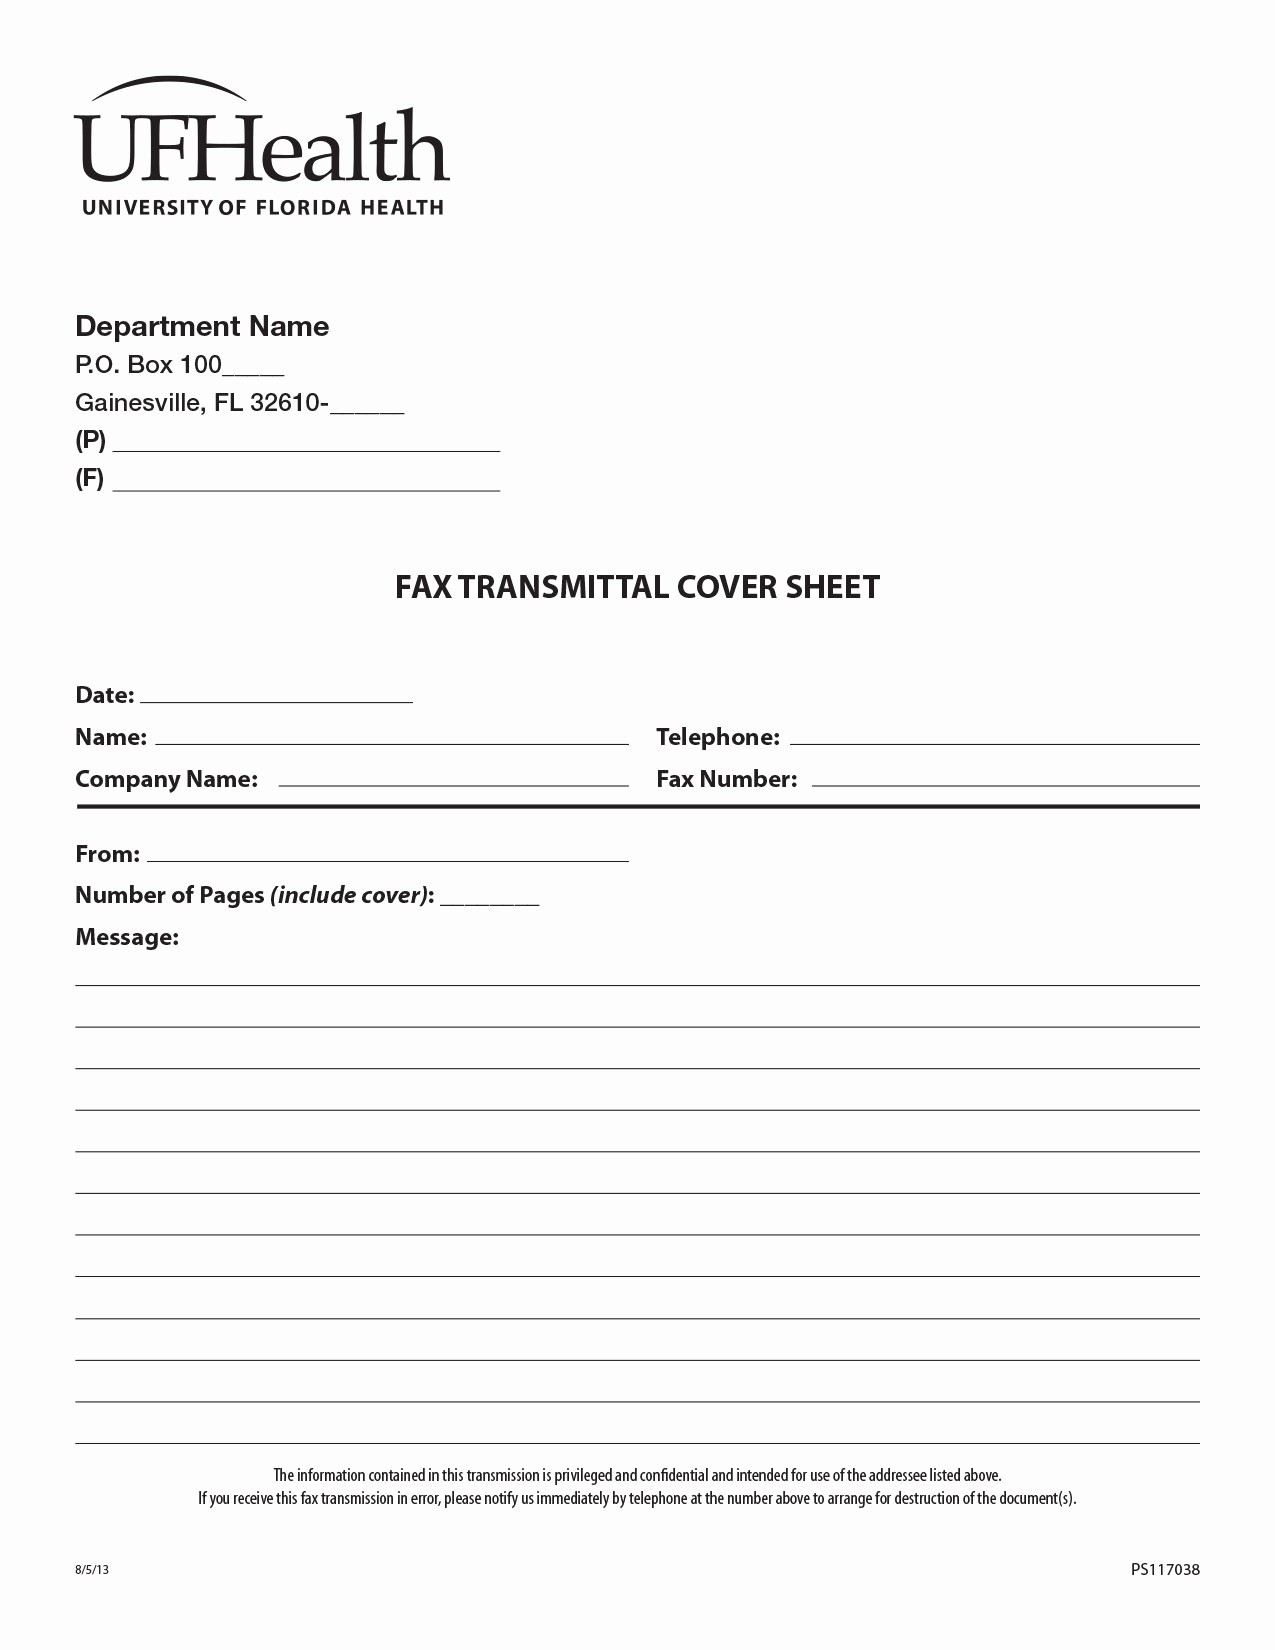 Business Fax Cover Sheet Template Unique Business Business Fax Cover Sheet